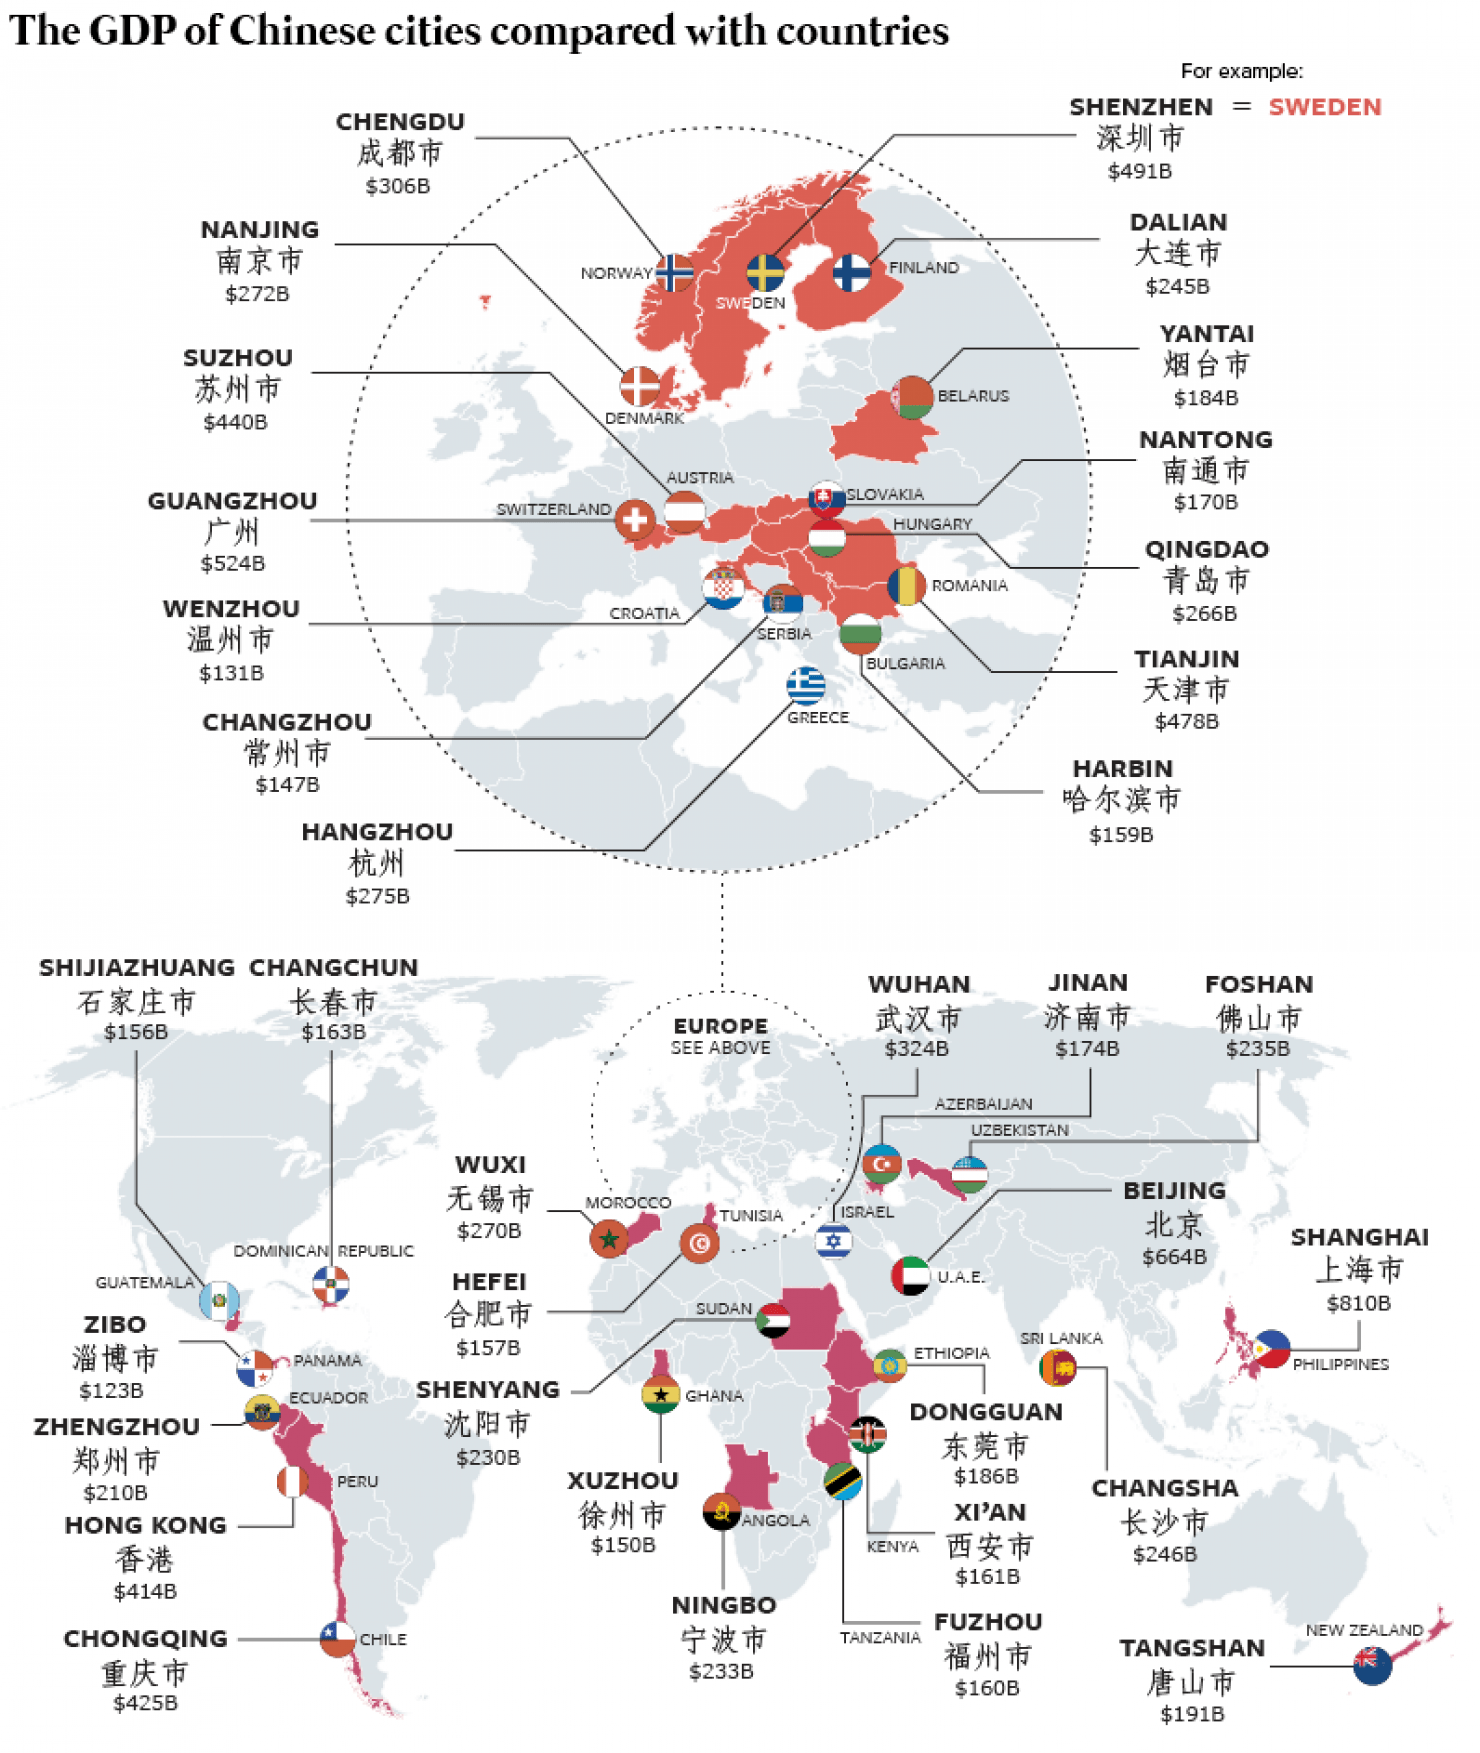 A graphic showing the GDP of Chinese cities compared with countries.